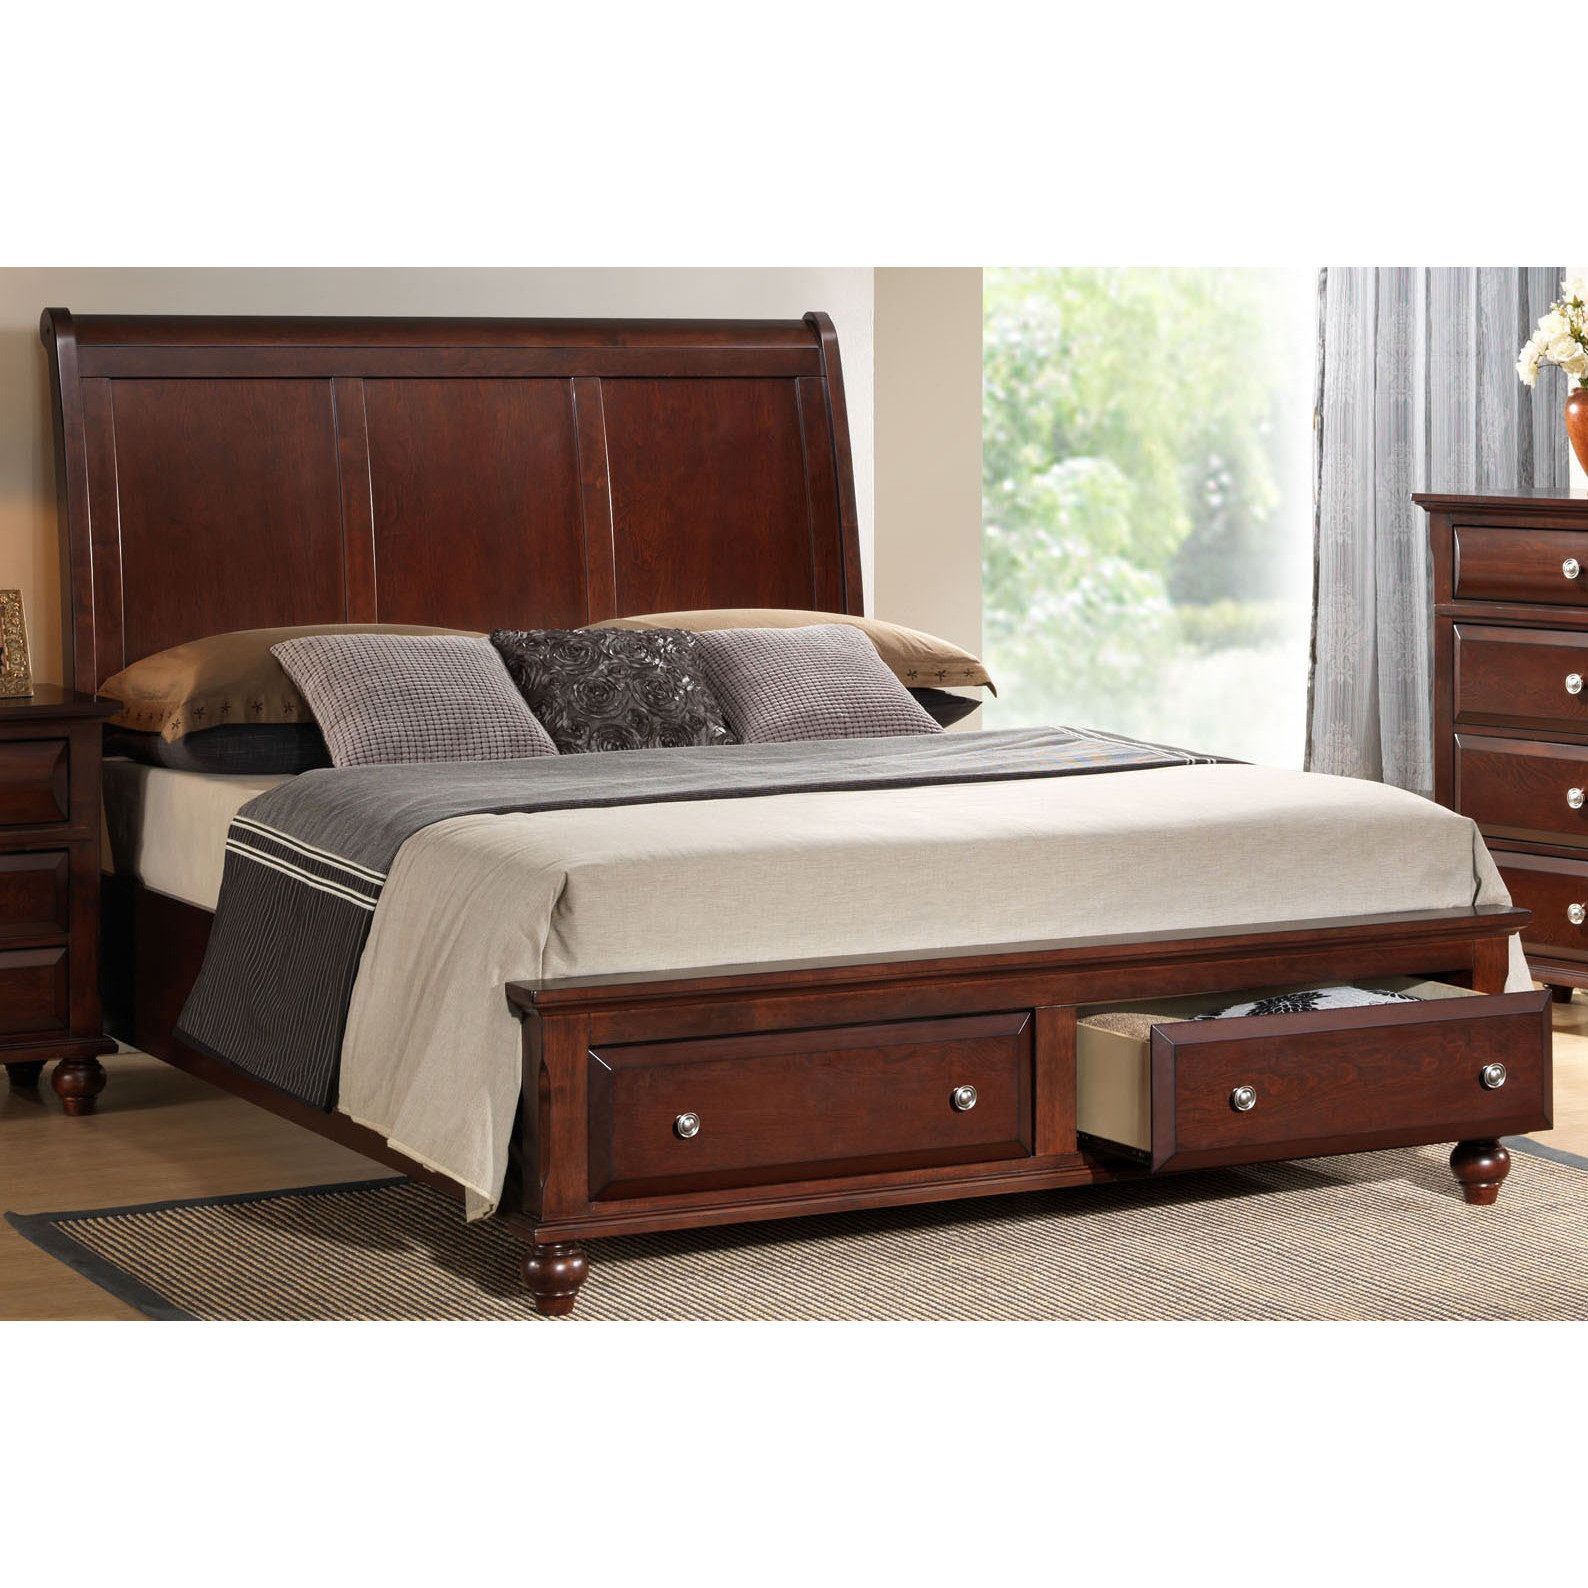 Furniture Bedroom Beds Queen Cherry